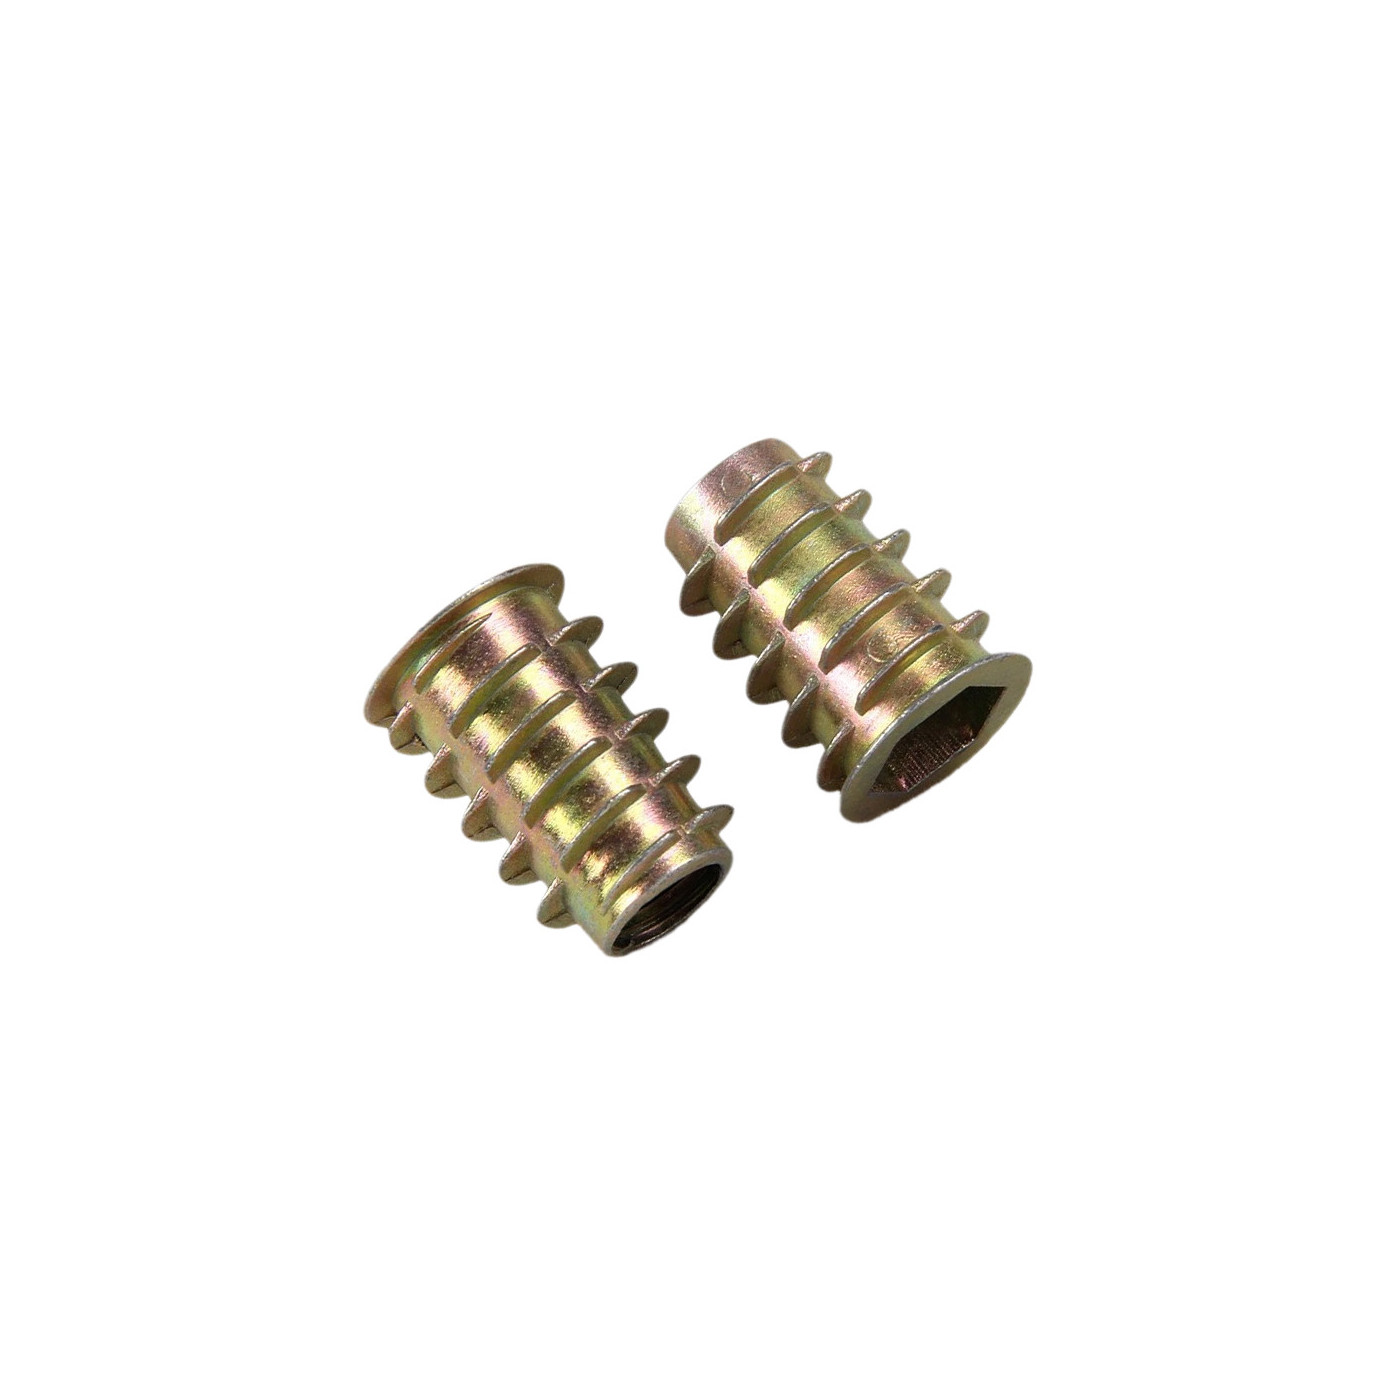 Set of 50 threaded inserts (screw-in nuts, M4x10 mm)  - 1